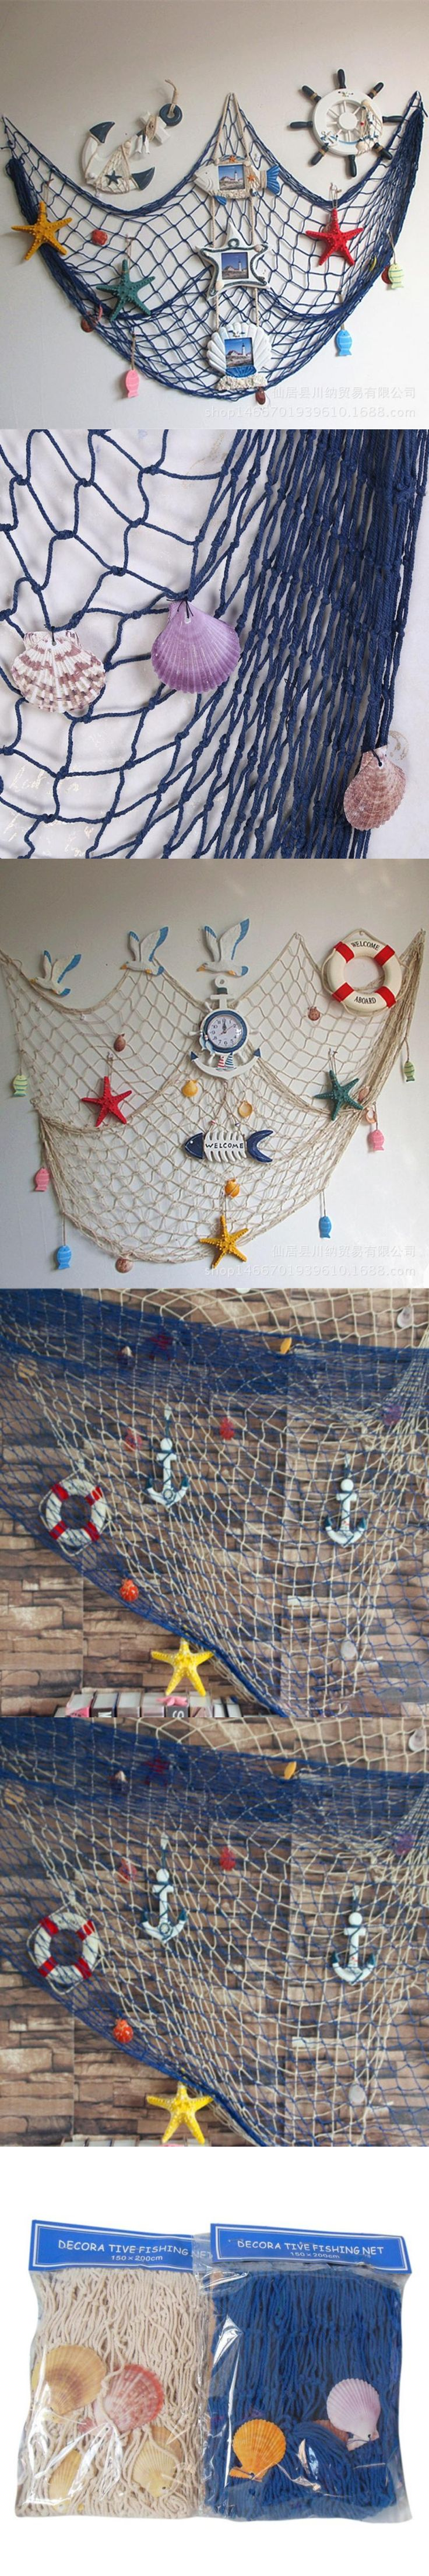 Home Decorations Fishing Net For Home Decor Wall Hangings  The Mediterranean Sea style Party Door Wall Stickers